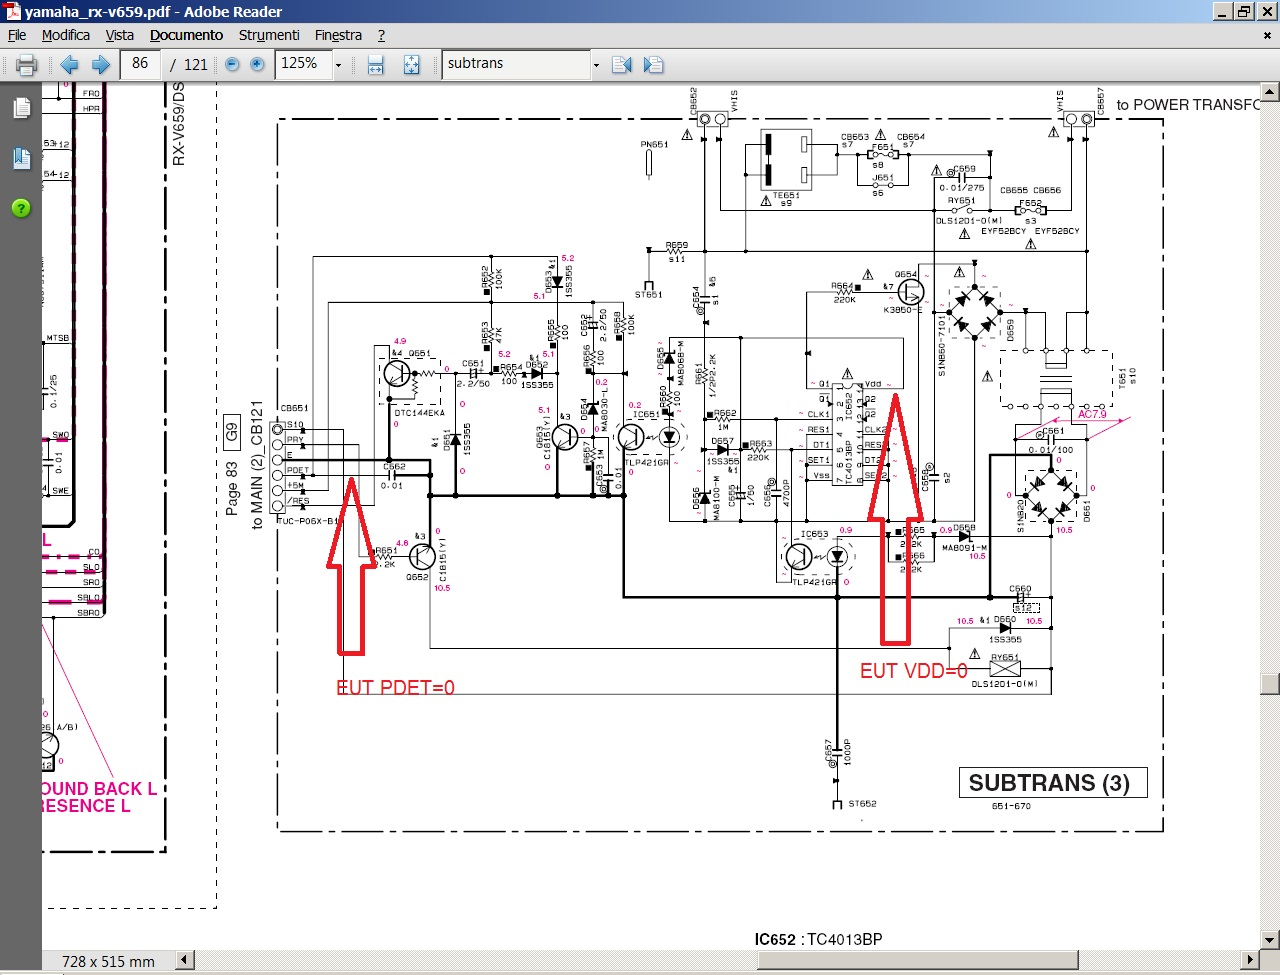 Wiring diagram yamaha rxs love soho wiring diagram i followed the very interesting post on the yamaha rx v659 i have 2012 06 asfbconference2016 Images